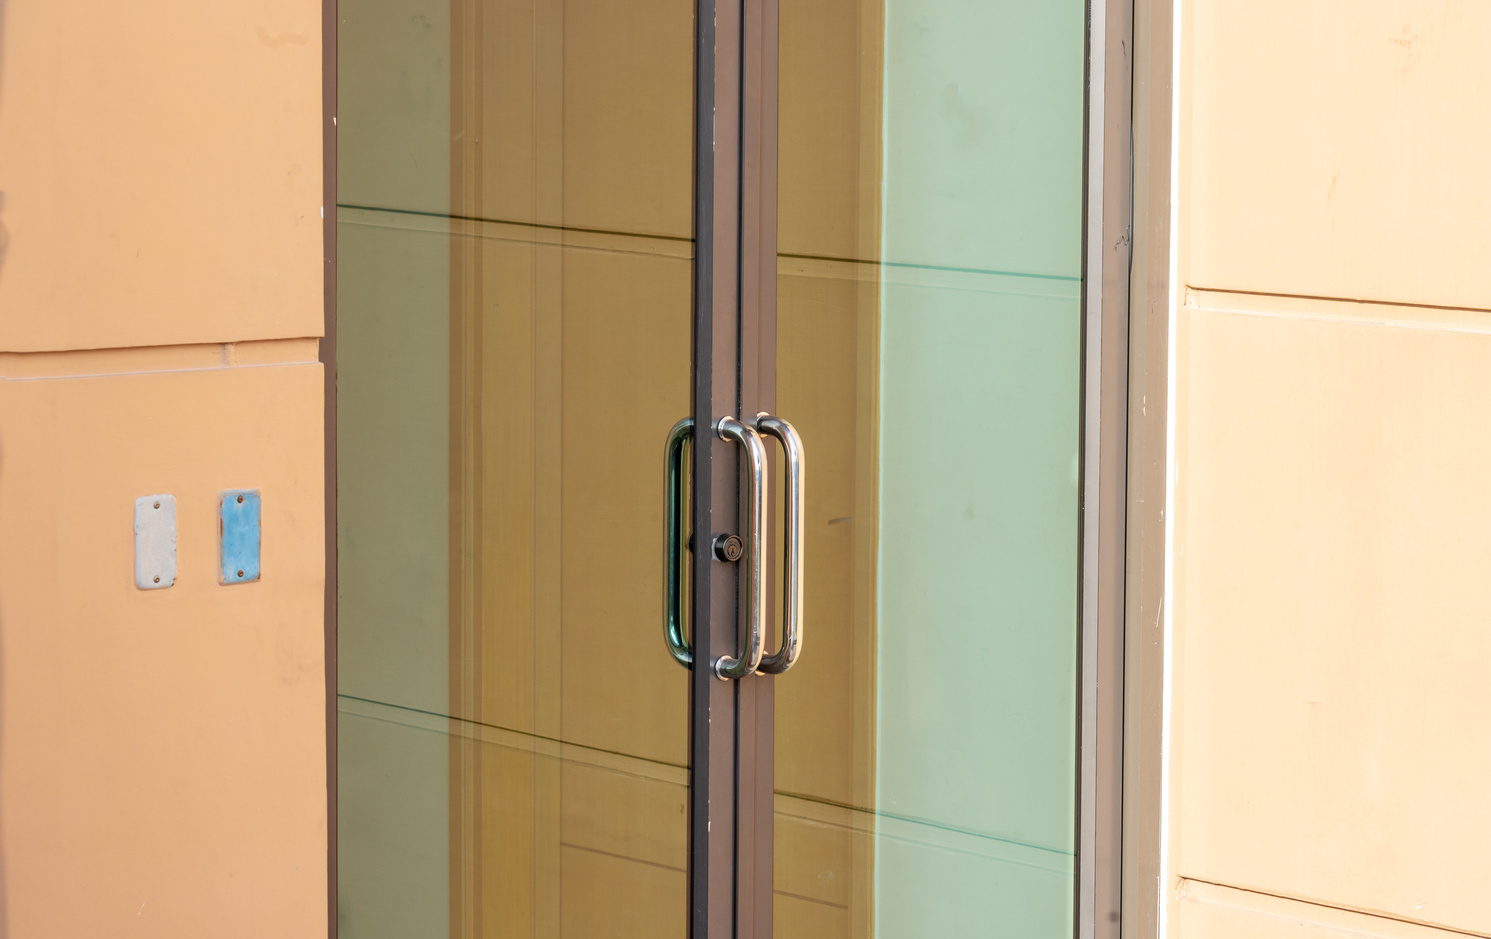 glass door close for exit to outside and light orange wall